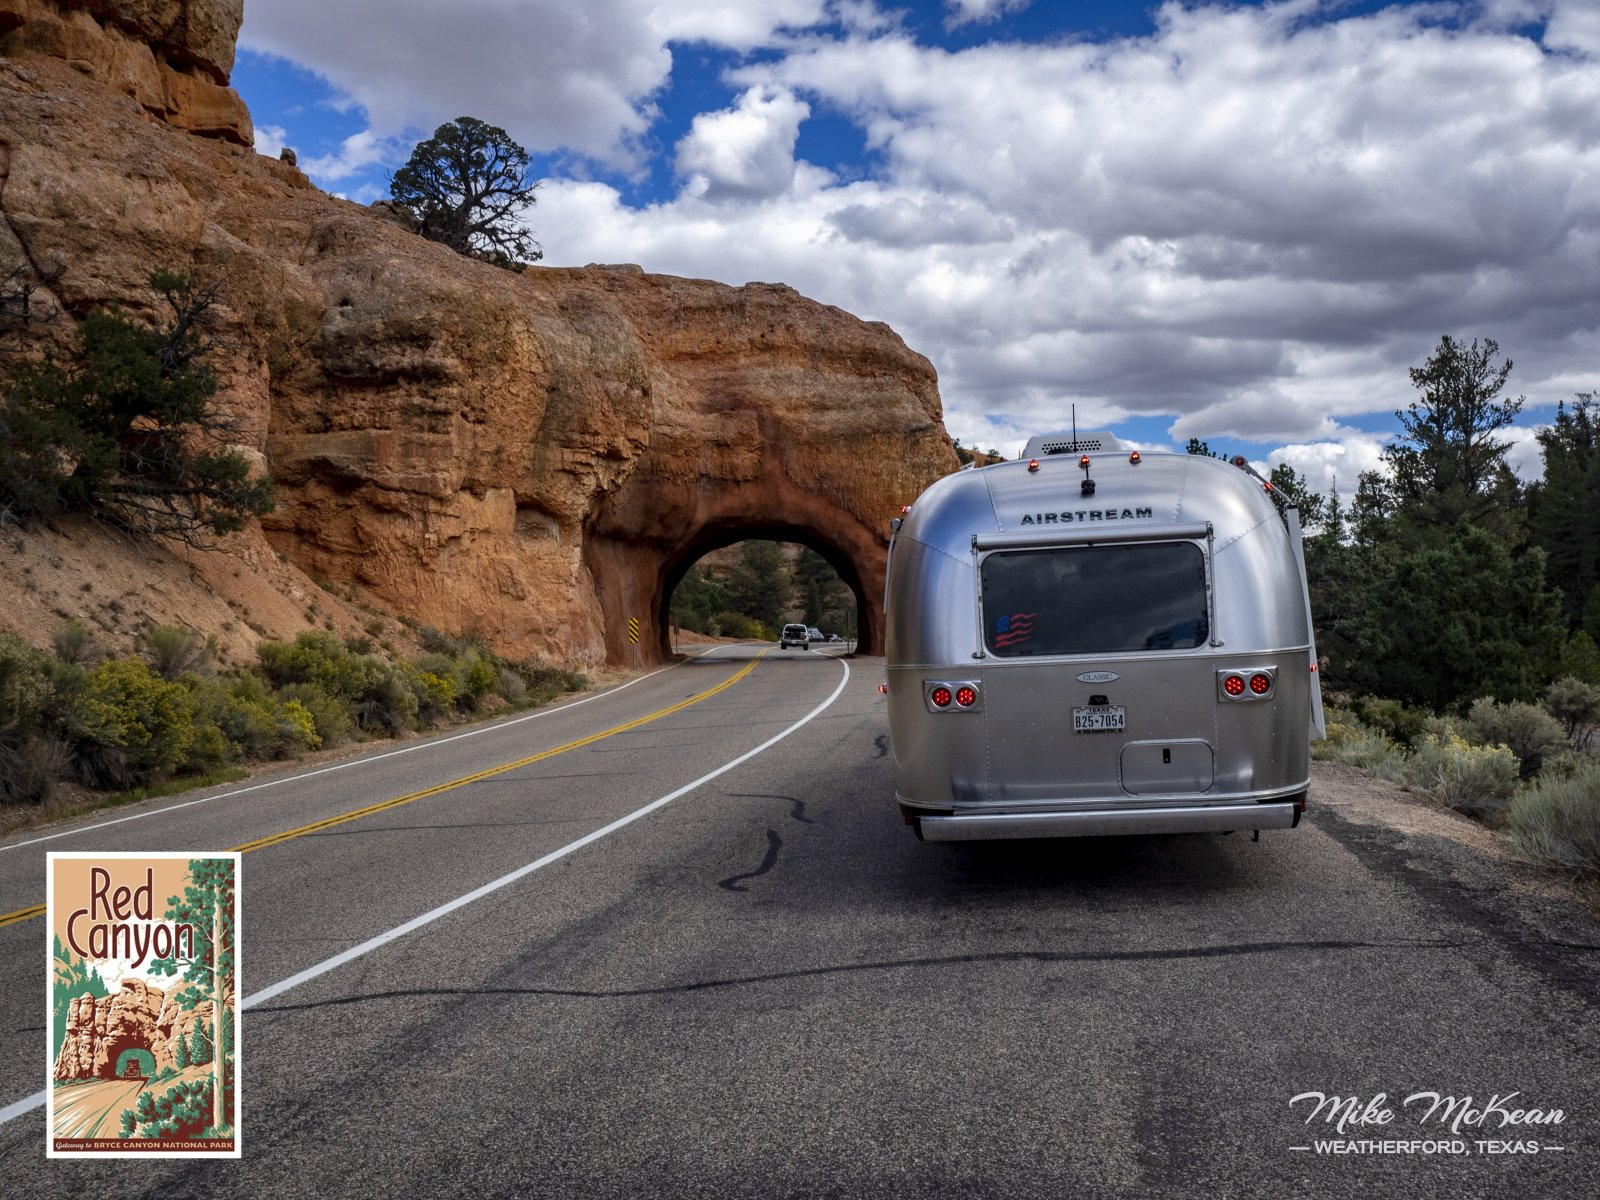 Click image for larger version  Name:Red Canyon_9234048.jpg Views:80 Size:470.6 KB ID:338644